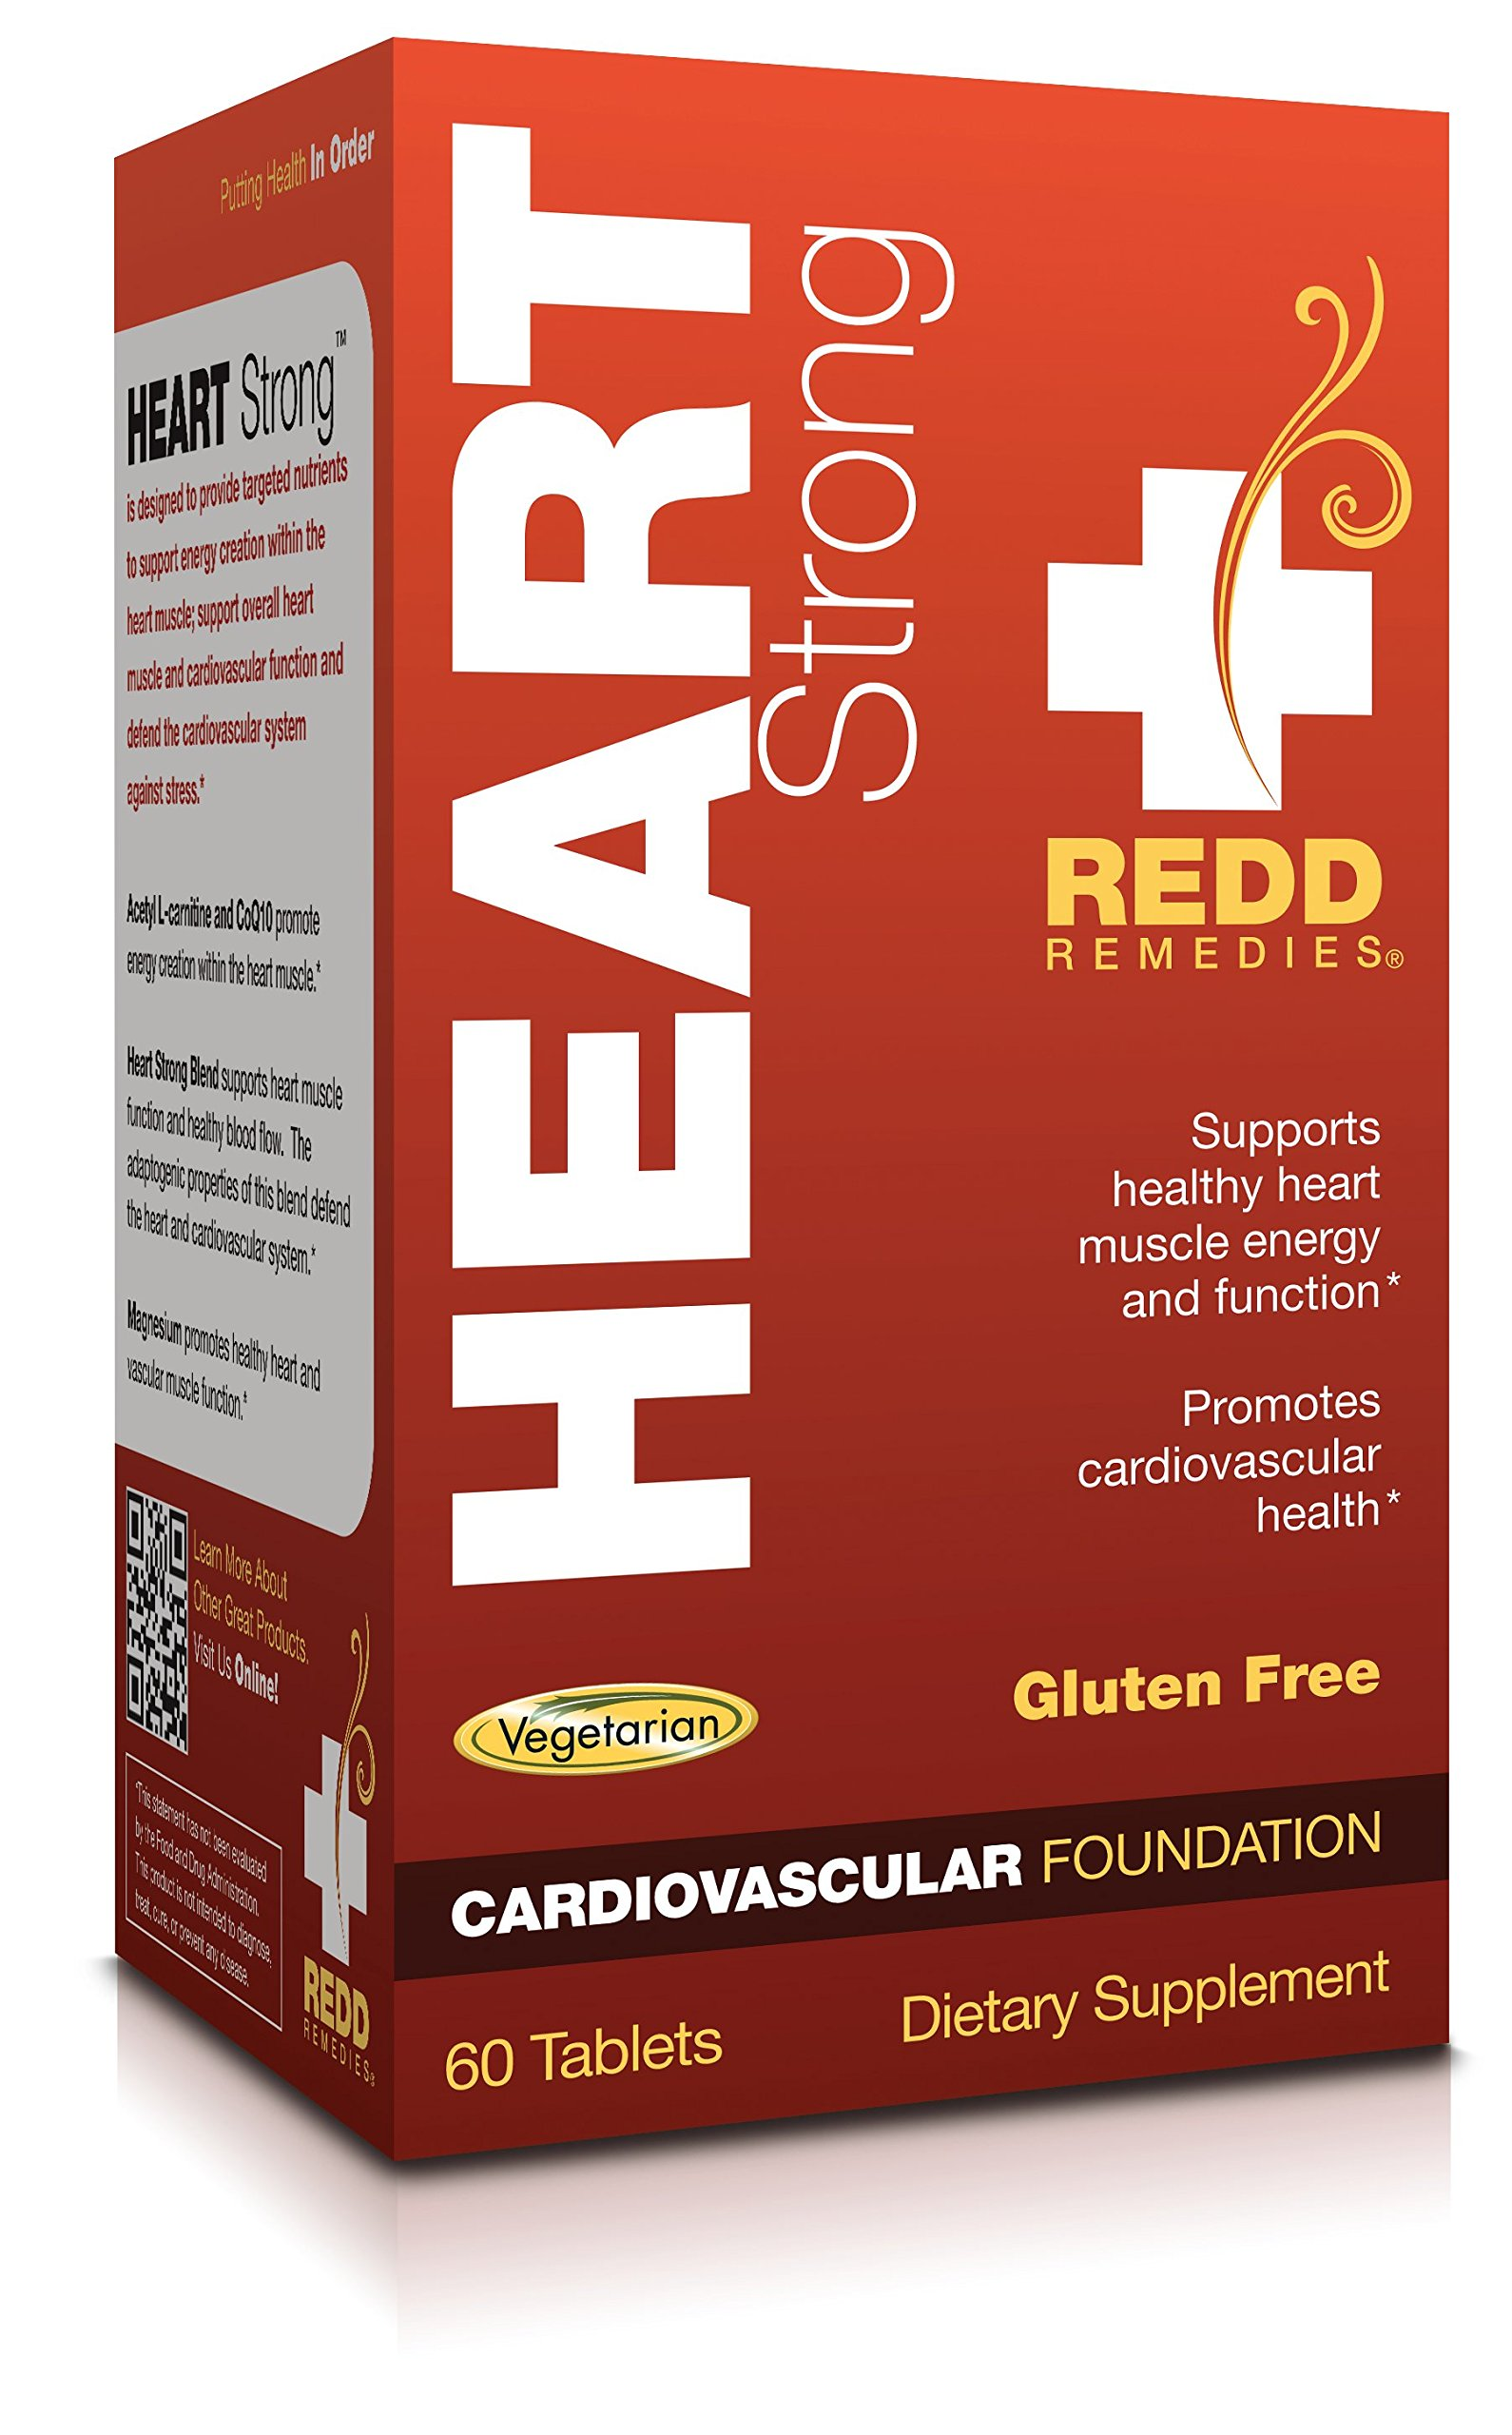 Redd Remedies - Heart Strong, Helps Maintain Heart Health and Energy, 60 count